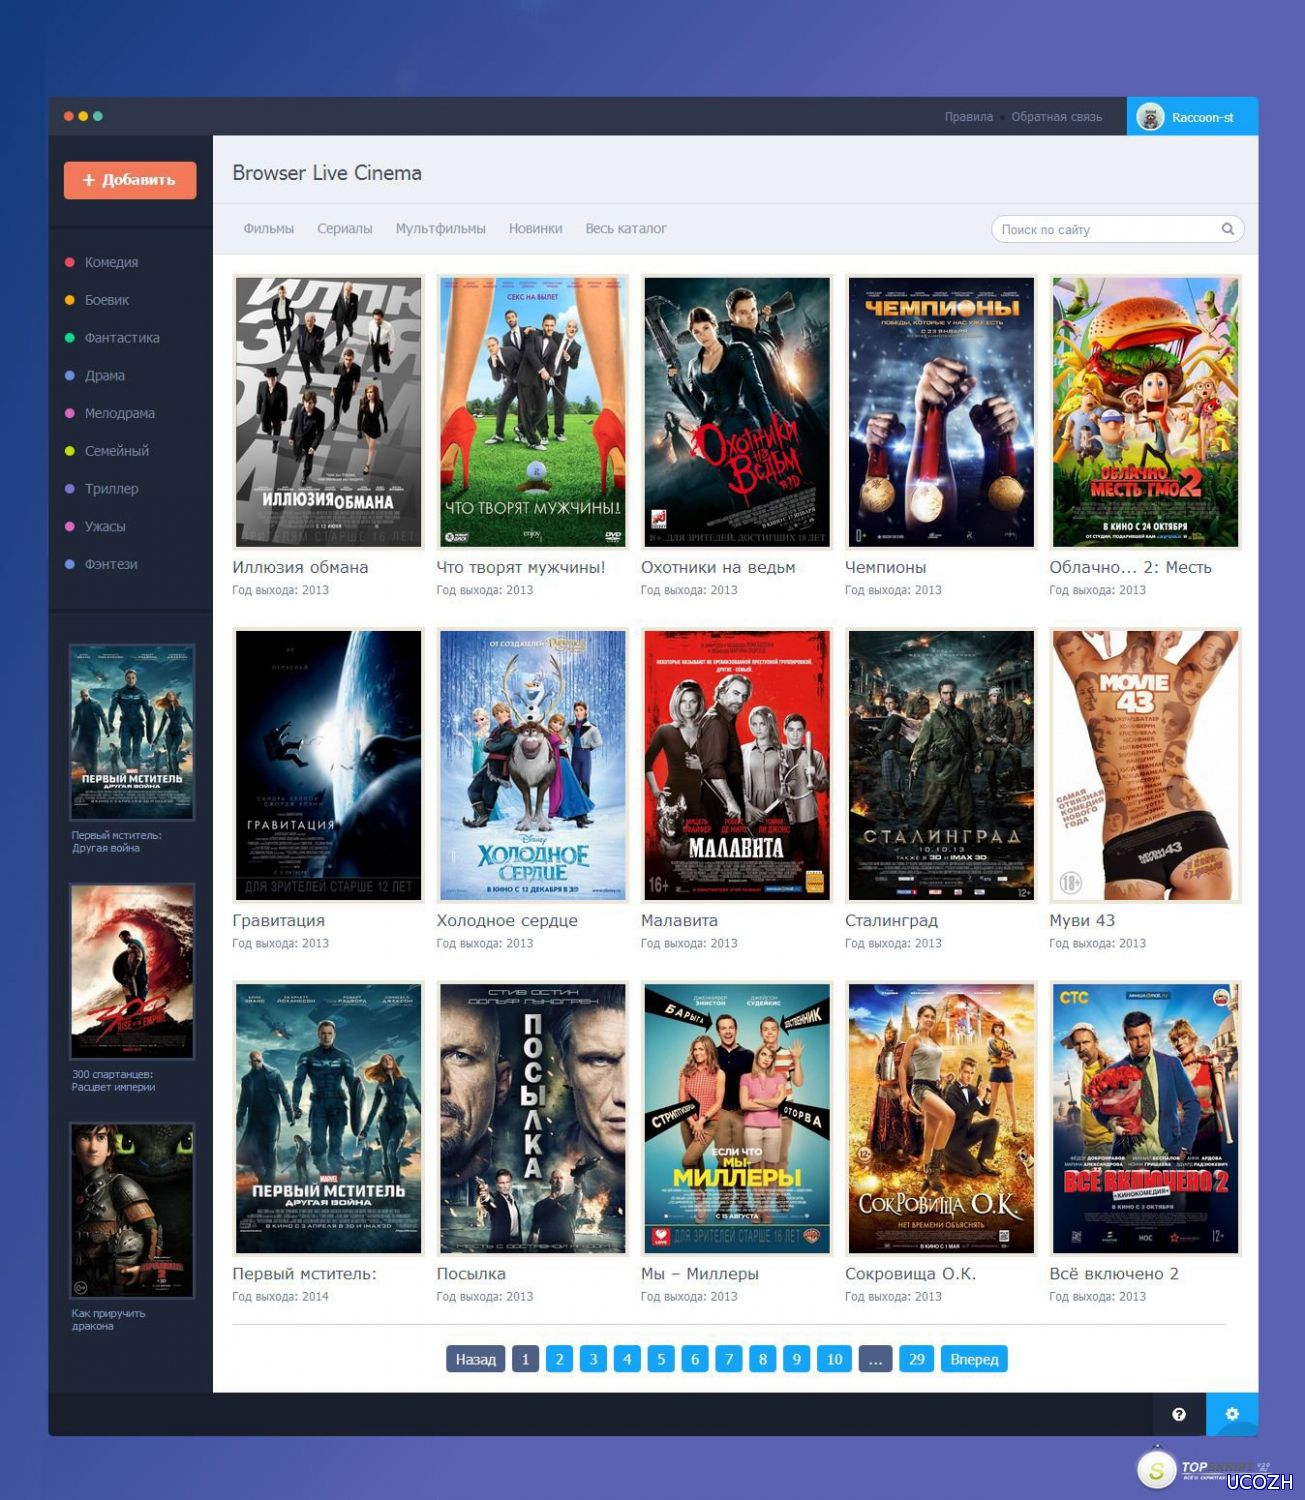 Кино шаблон BROWSER-LIFE-CINEMA для uCOZ